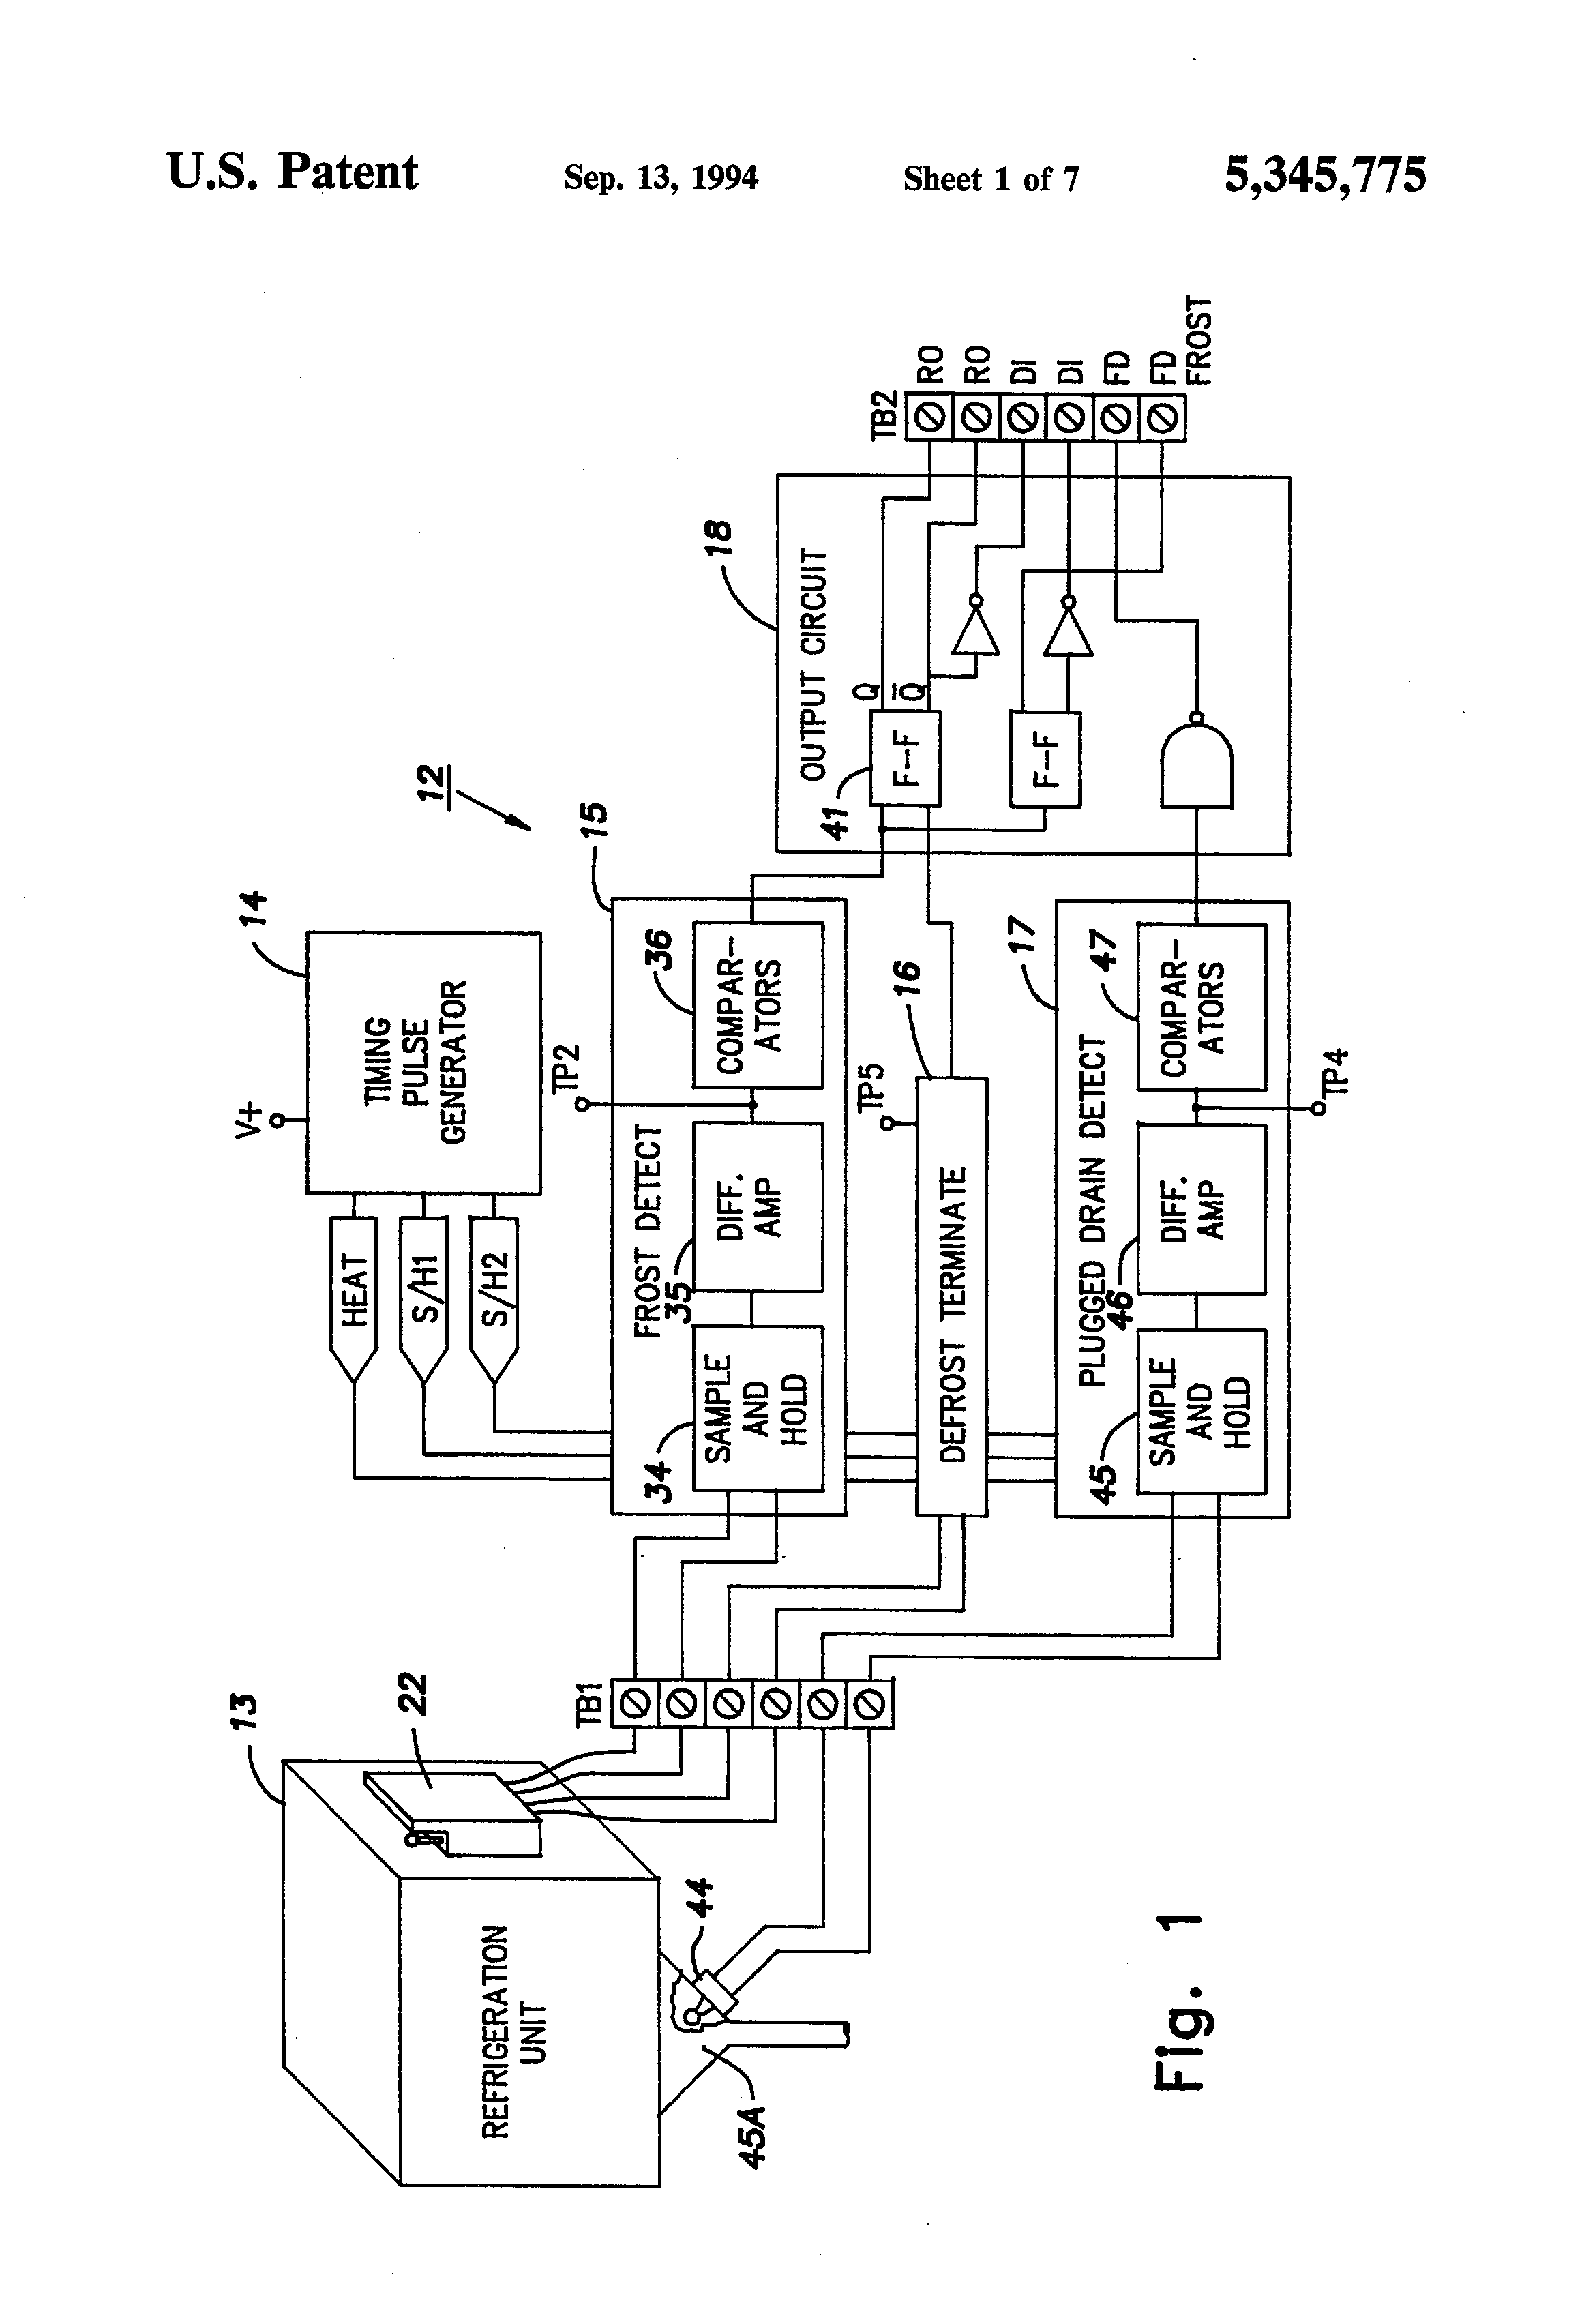 wiring diagram of refrigeration system sub breaker panel patent us5345775 detection assembly